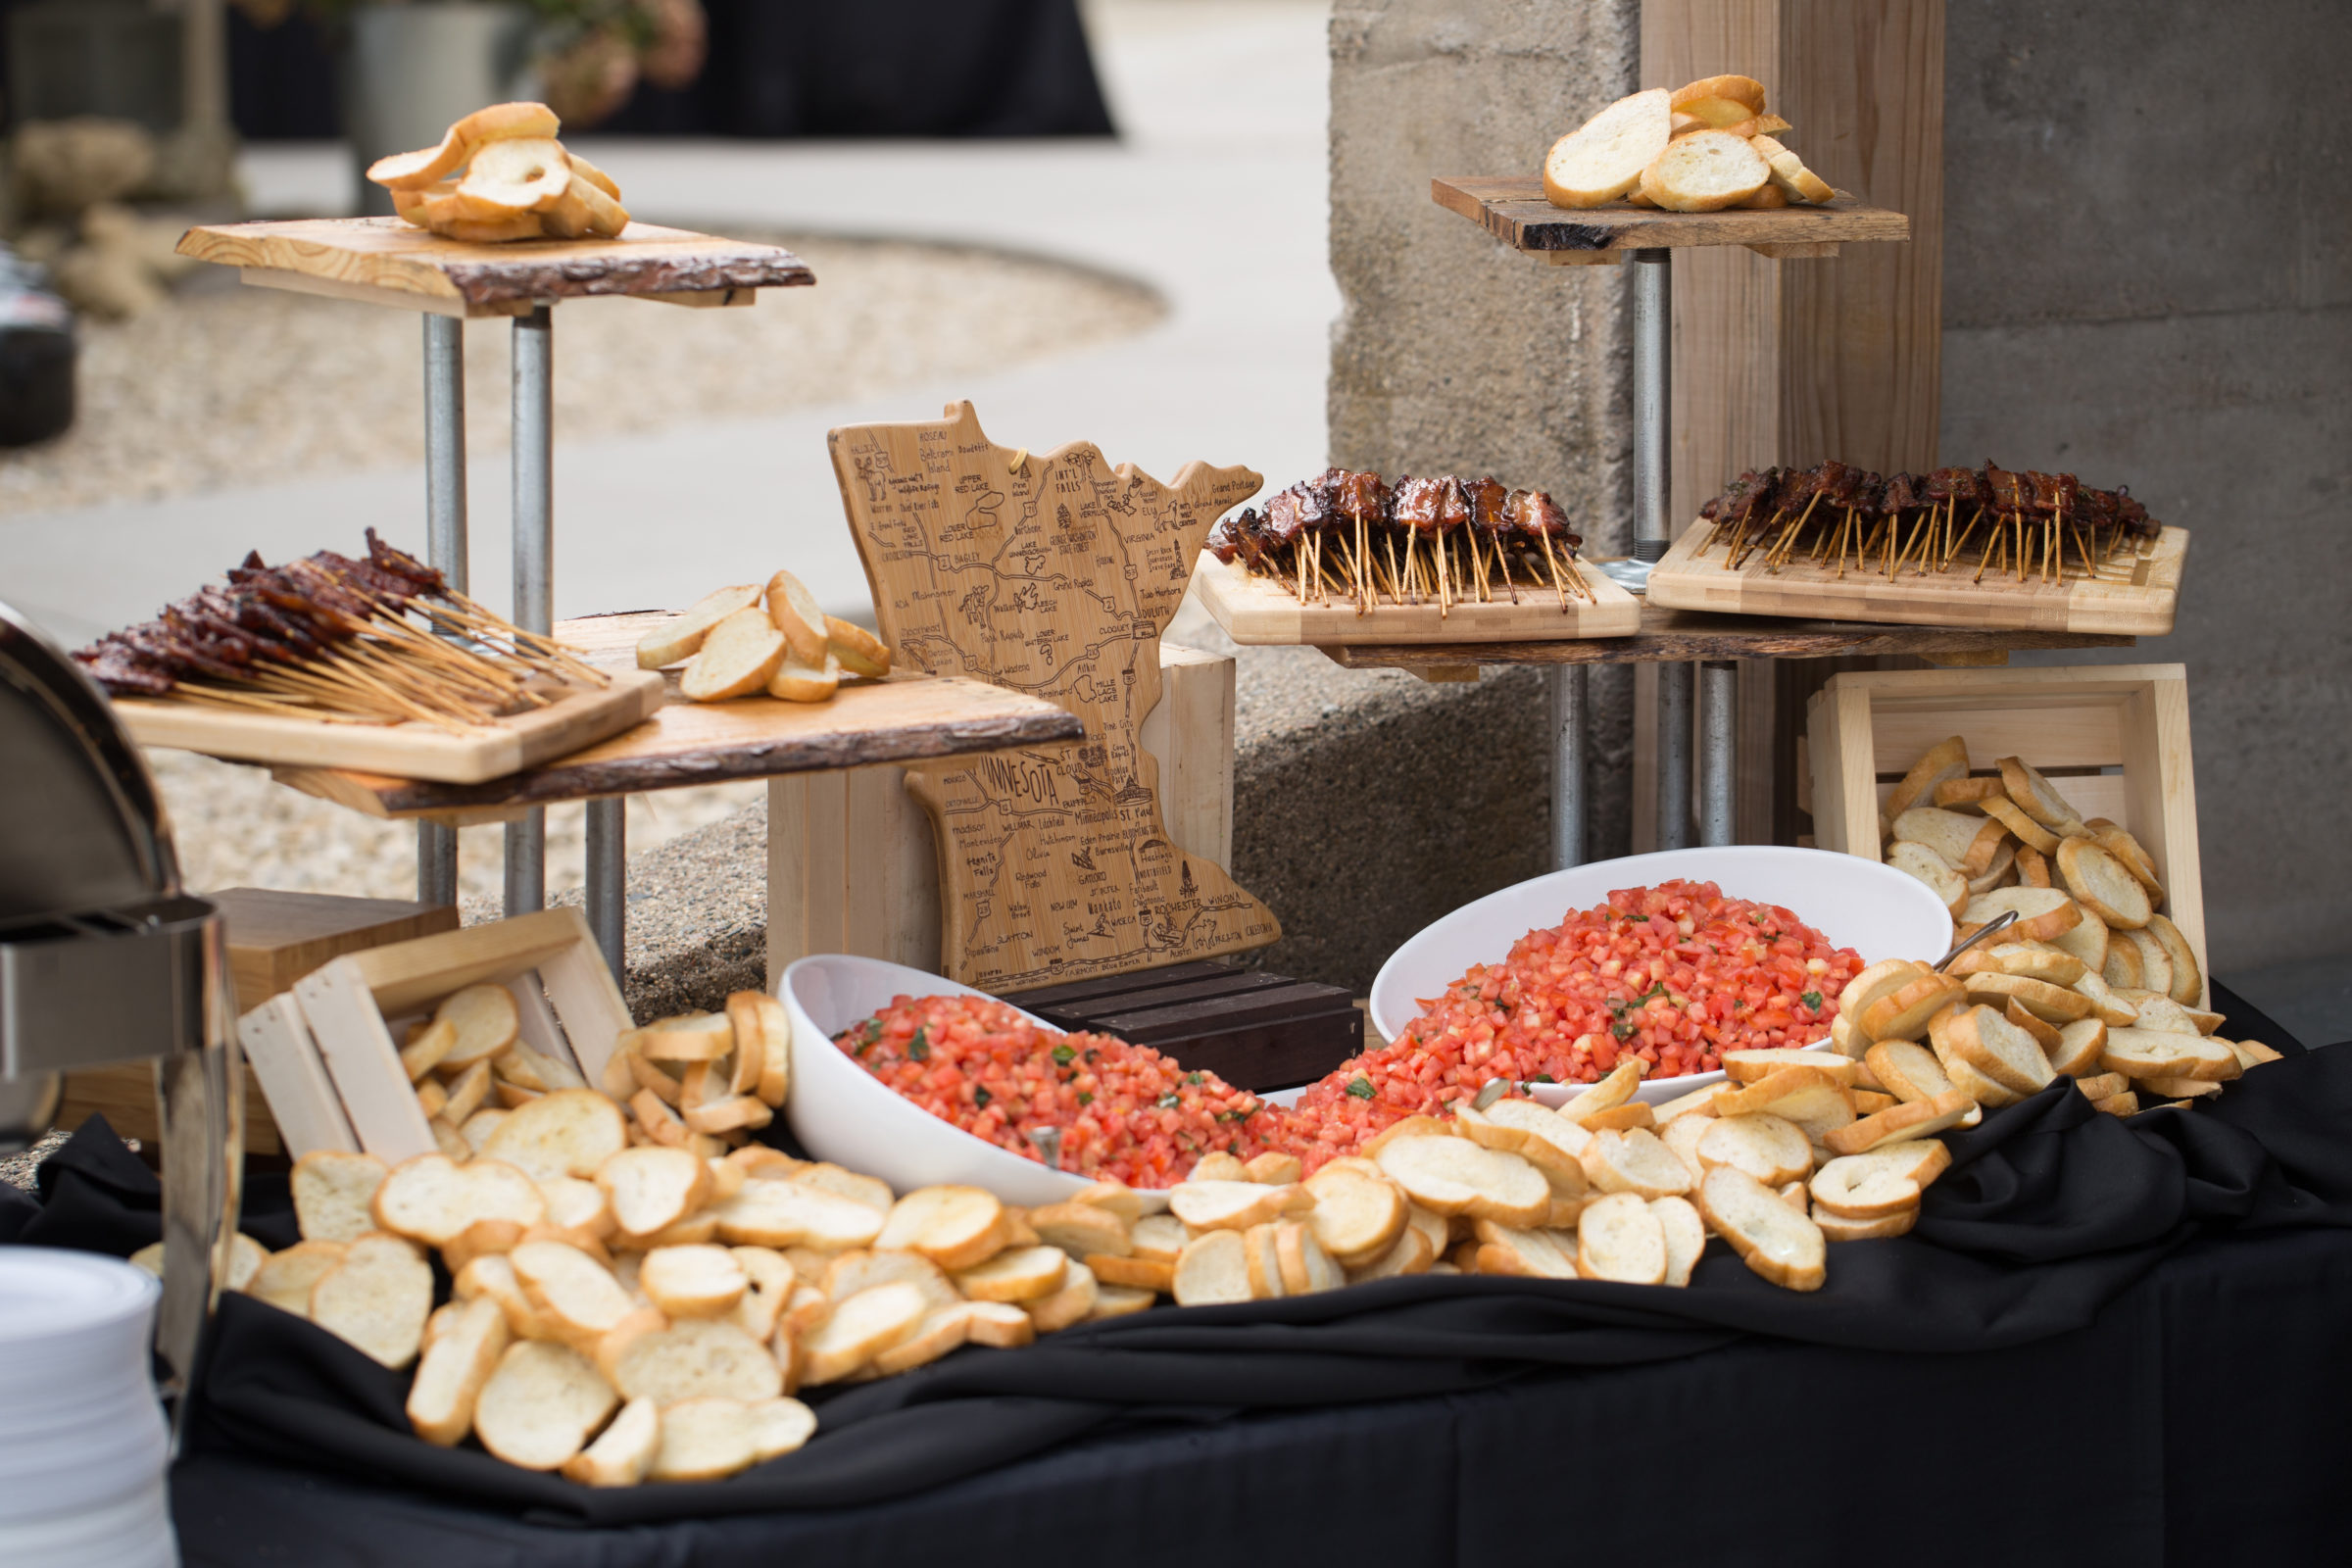 Apples-2-Apples-Catering-Appetizer-Board